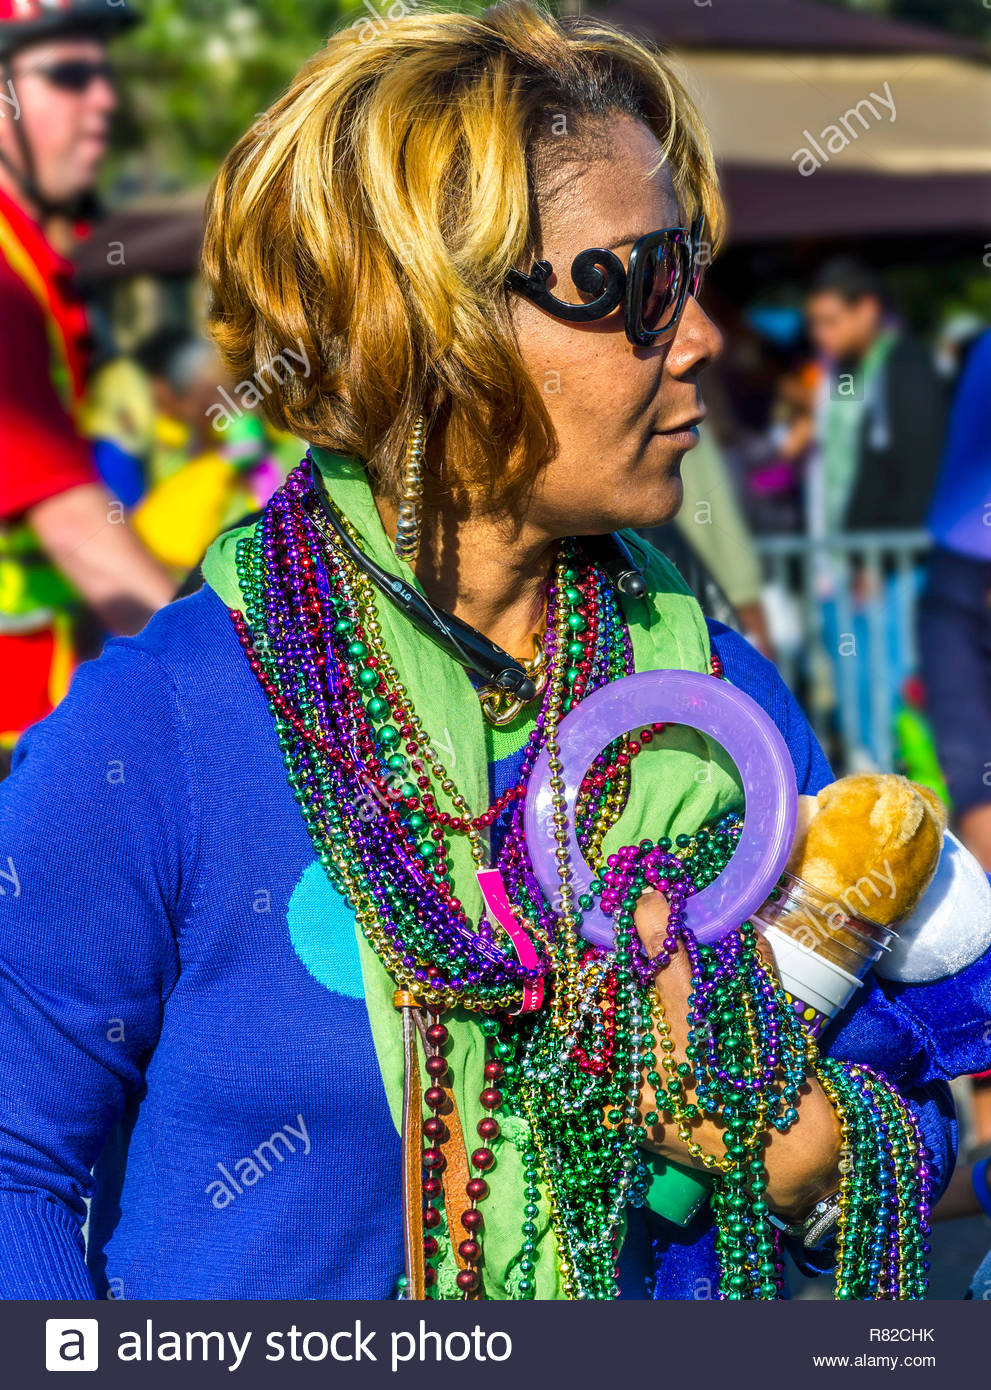 A parade goer carries loot she gathered during the Joe Cain Procession at Mardi Gras, March 2, 2014 in Mobile, Ala. French settlers held the first Mar - Stock Image